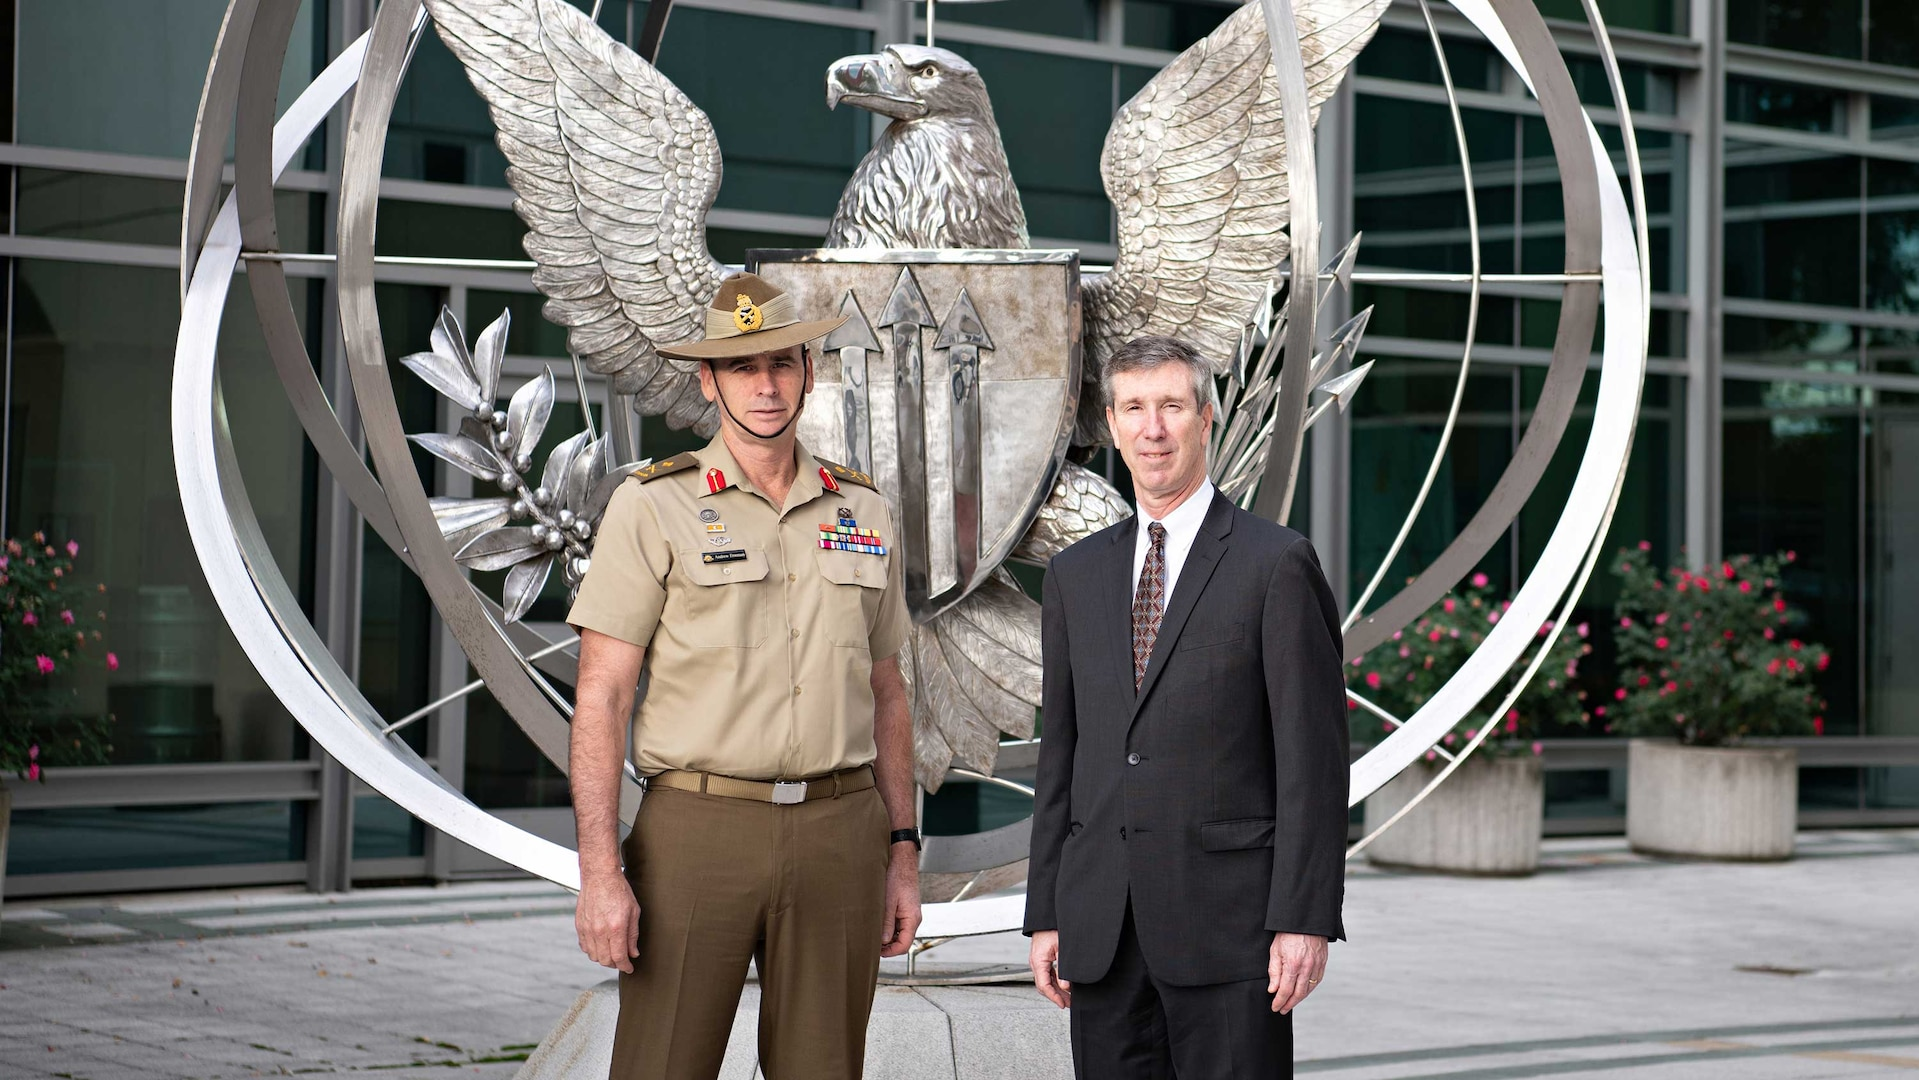 The Defense Threat Reduction Agency's Dr. Rhys Williams, Director (Acting) met with Major General Andrew Freeman AM, Head of Australian Defense Staff and Defense Attaché to the United States on October 4.